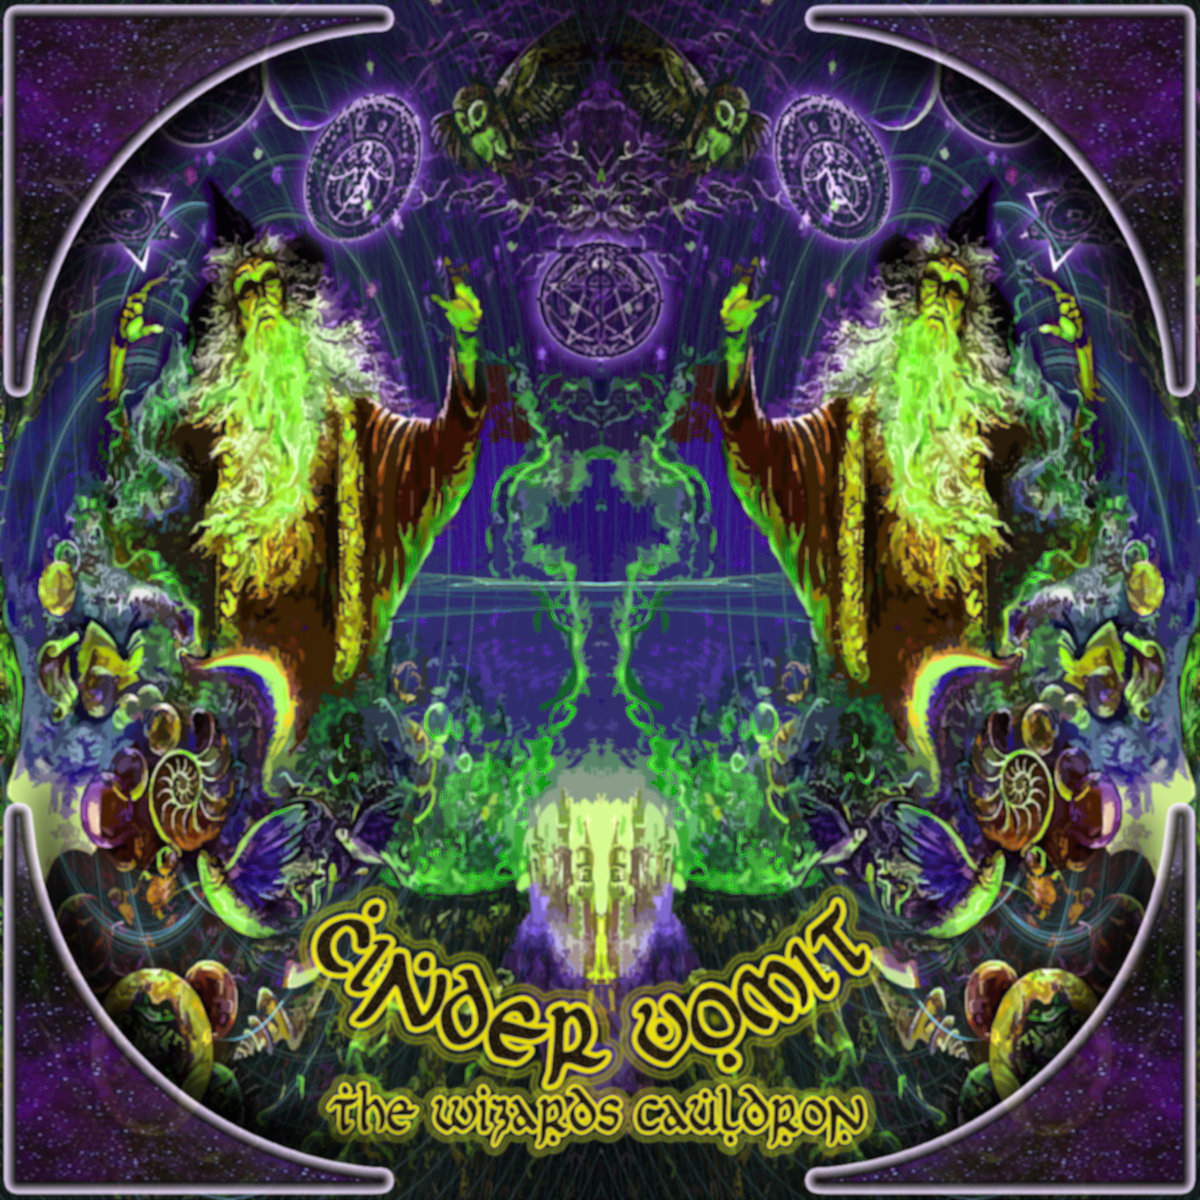 CINDER VOMIT - The Wizards Cauldron (Anomalistic Records